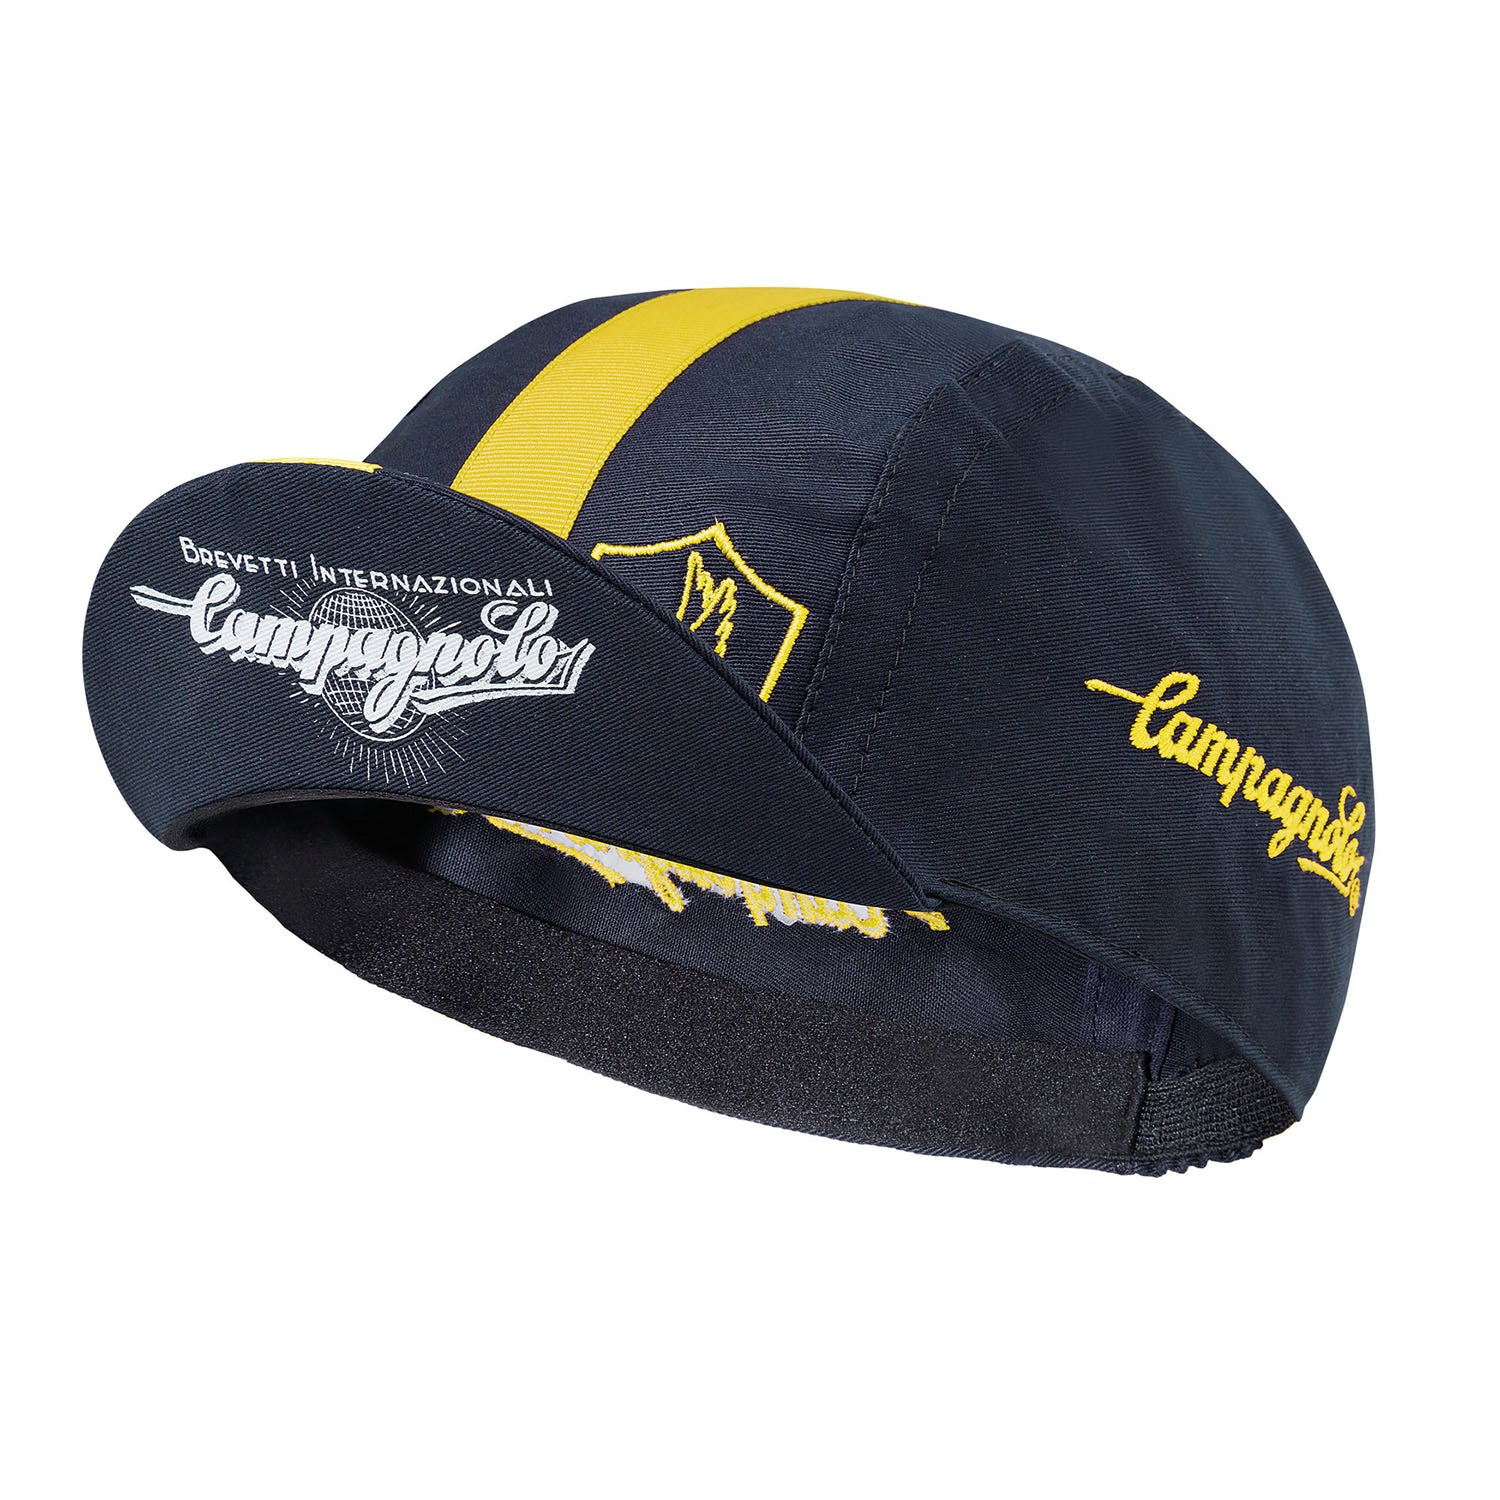 Campagnolo Cycling Cap - Tour